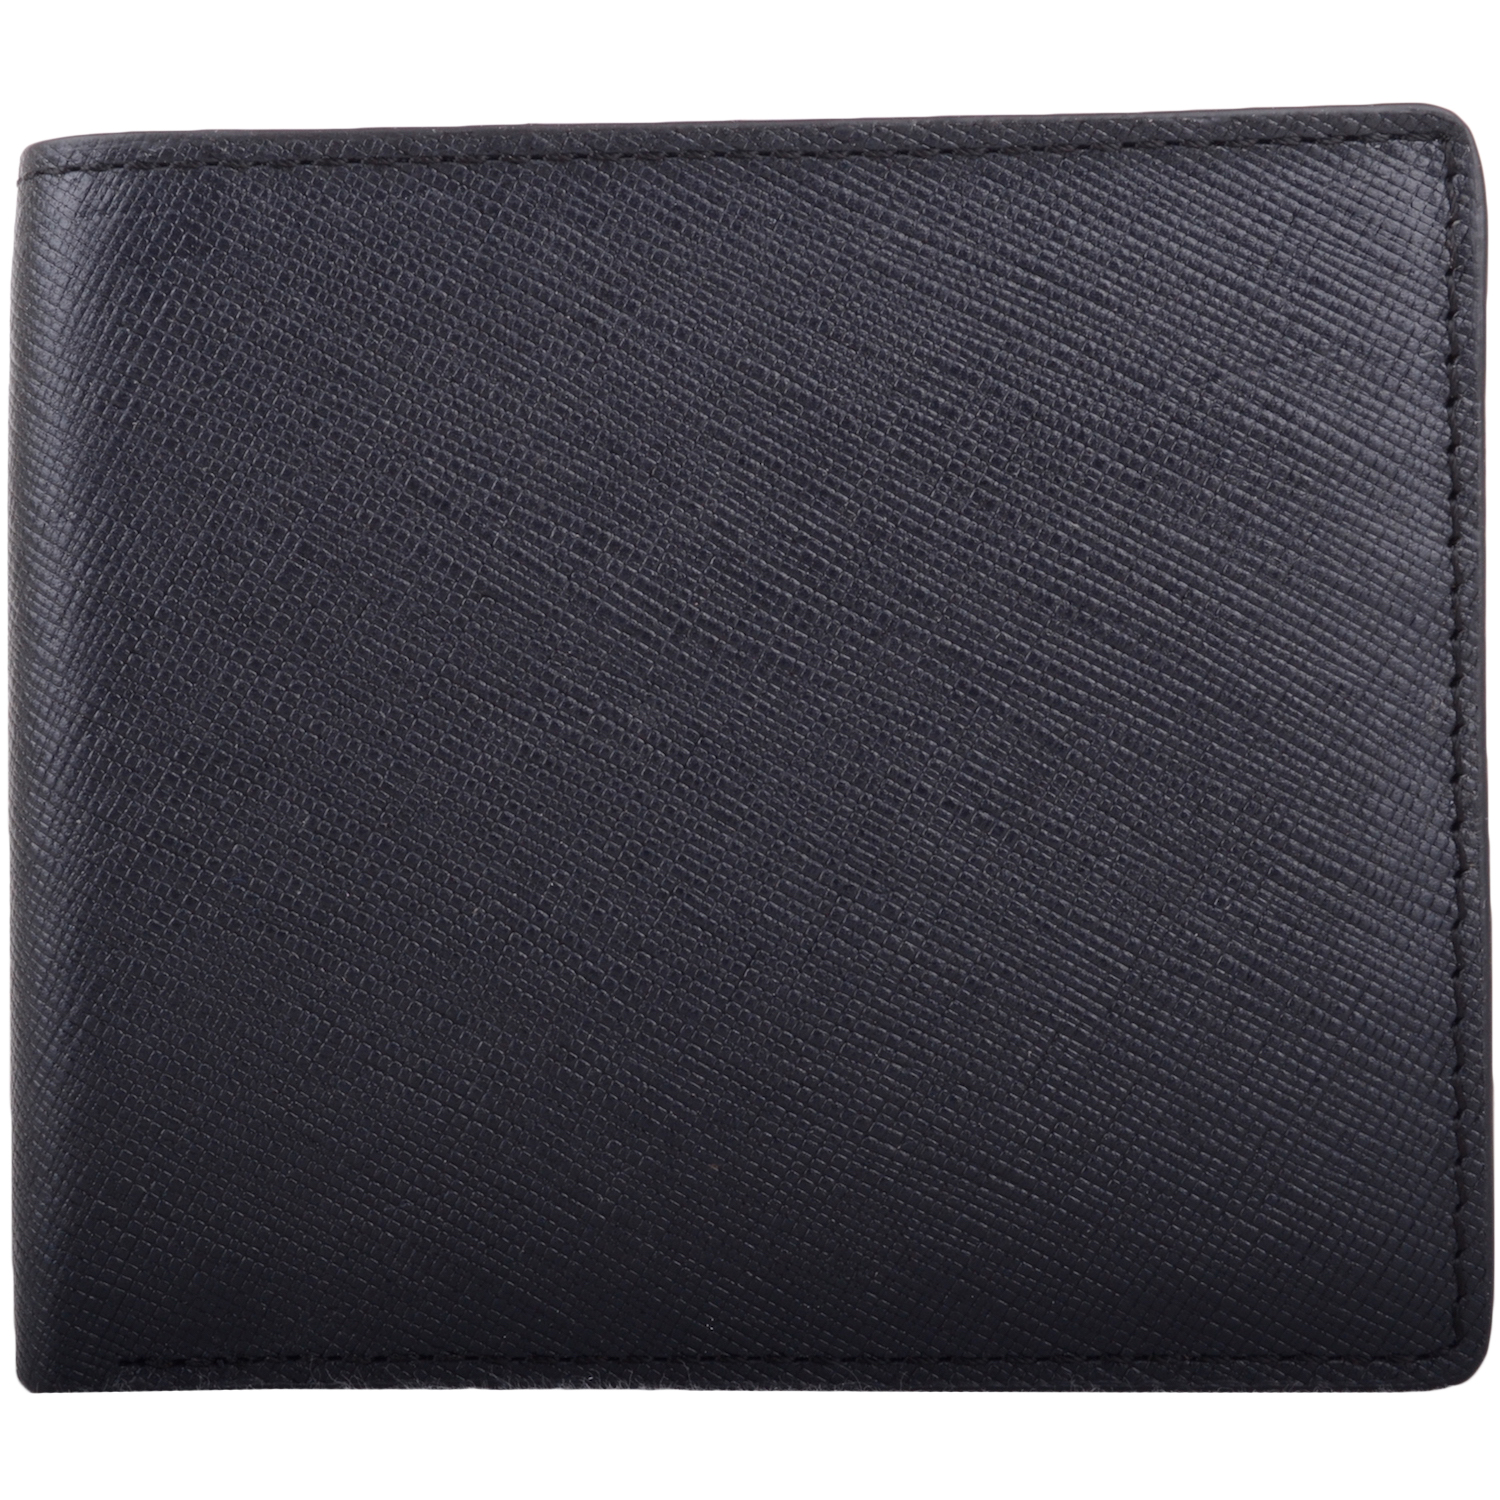 RFID Protected Bi-Fold Soft Leather Wallet - Navy/Red